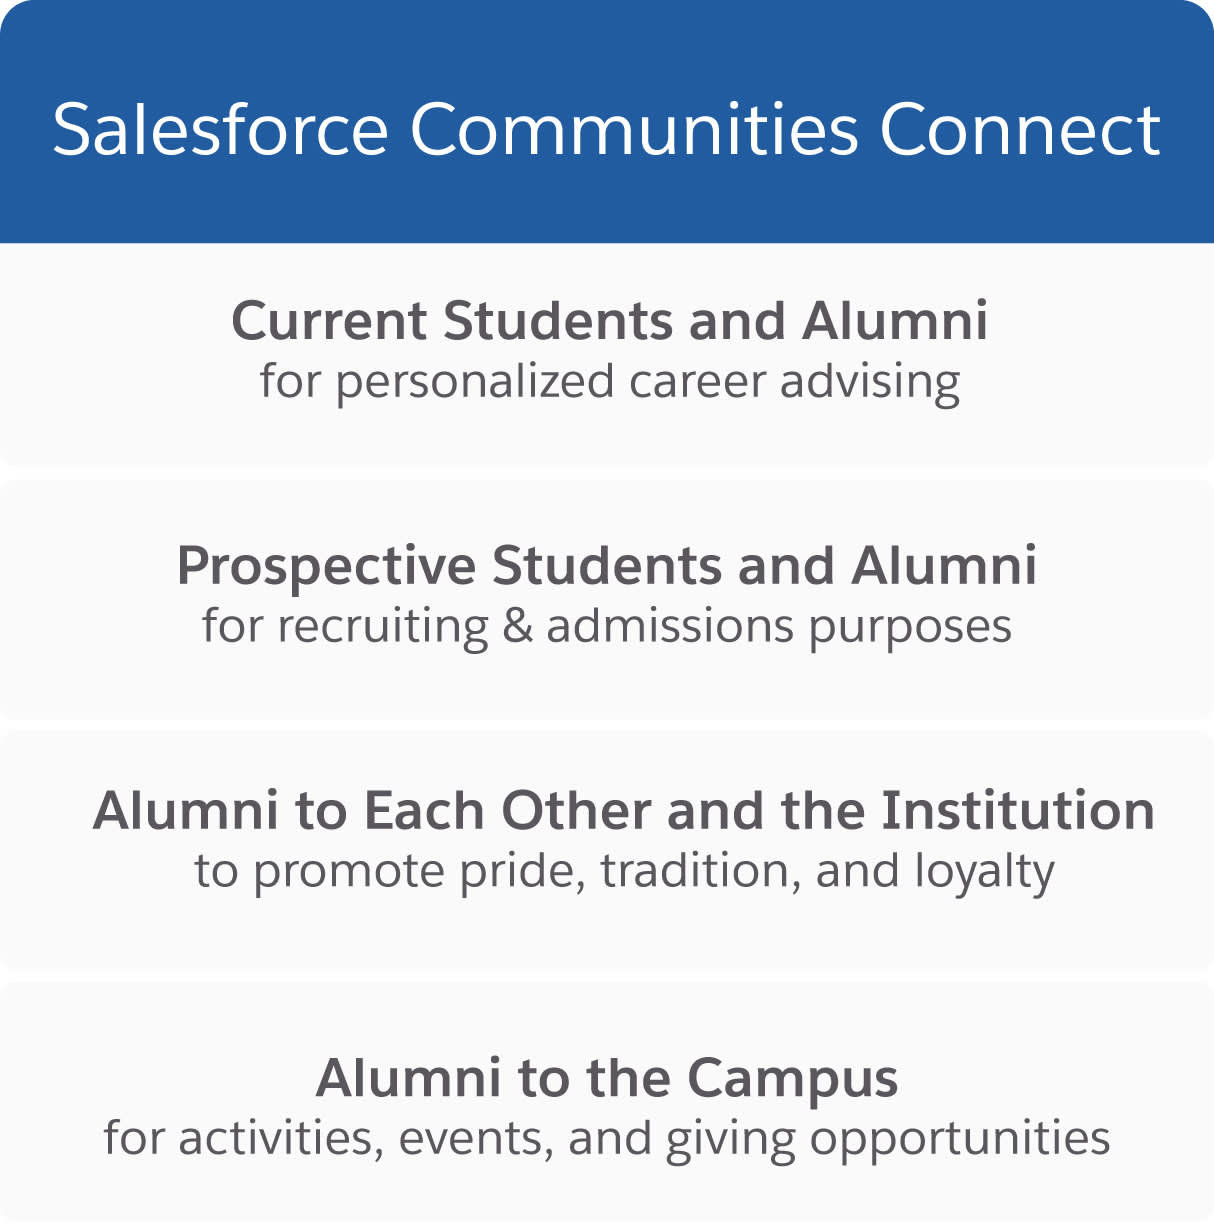 Salesforce Communities Connect: Current Students and Alumni for personalized career advising, Prospective Students and Alumni for recruiting and admissions purposes, Alumni to Each Other and the Institution to promote pride, tradition, and loyalty, Alumni to the Campus for activities, events, and giving opportunities